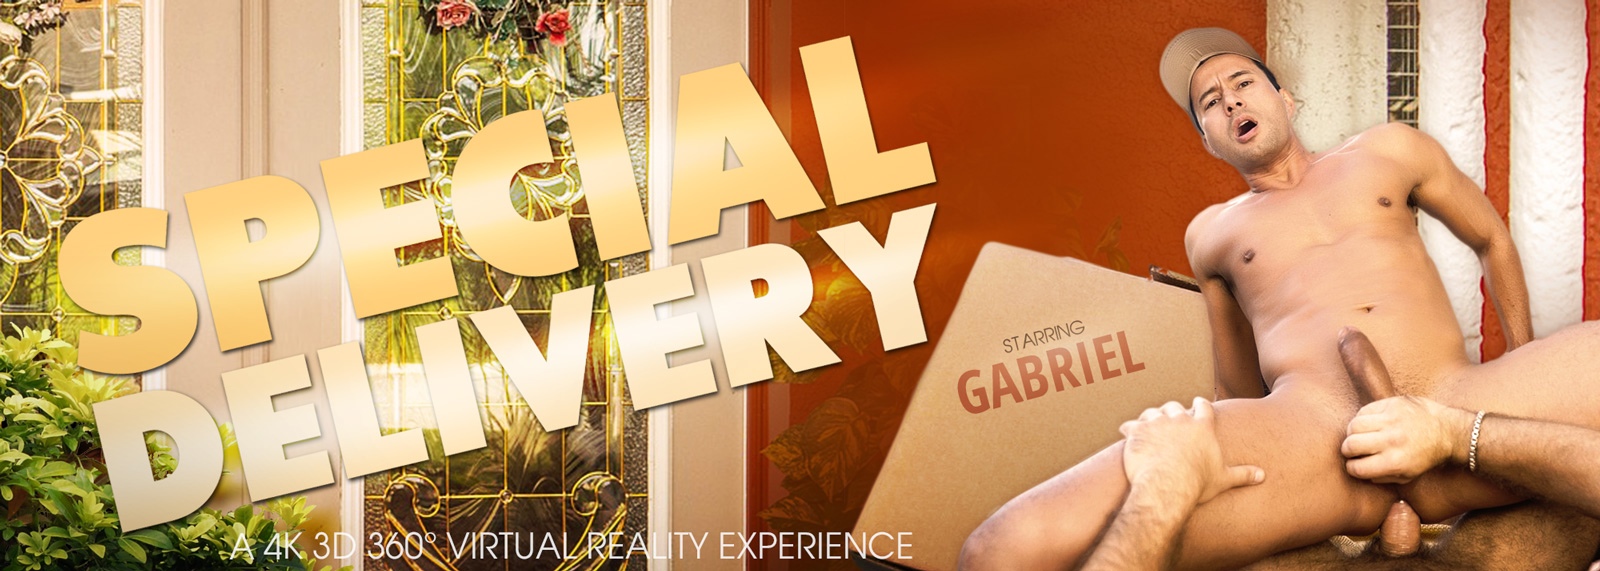 Special Delivery - VR Porn Video, Starring Gabriel D'Allessandro